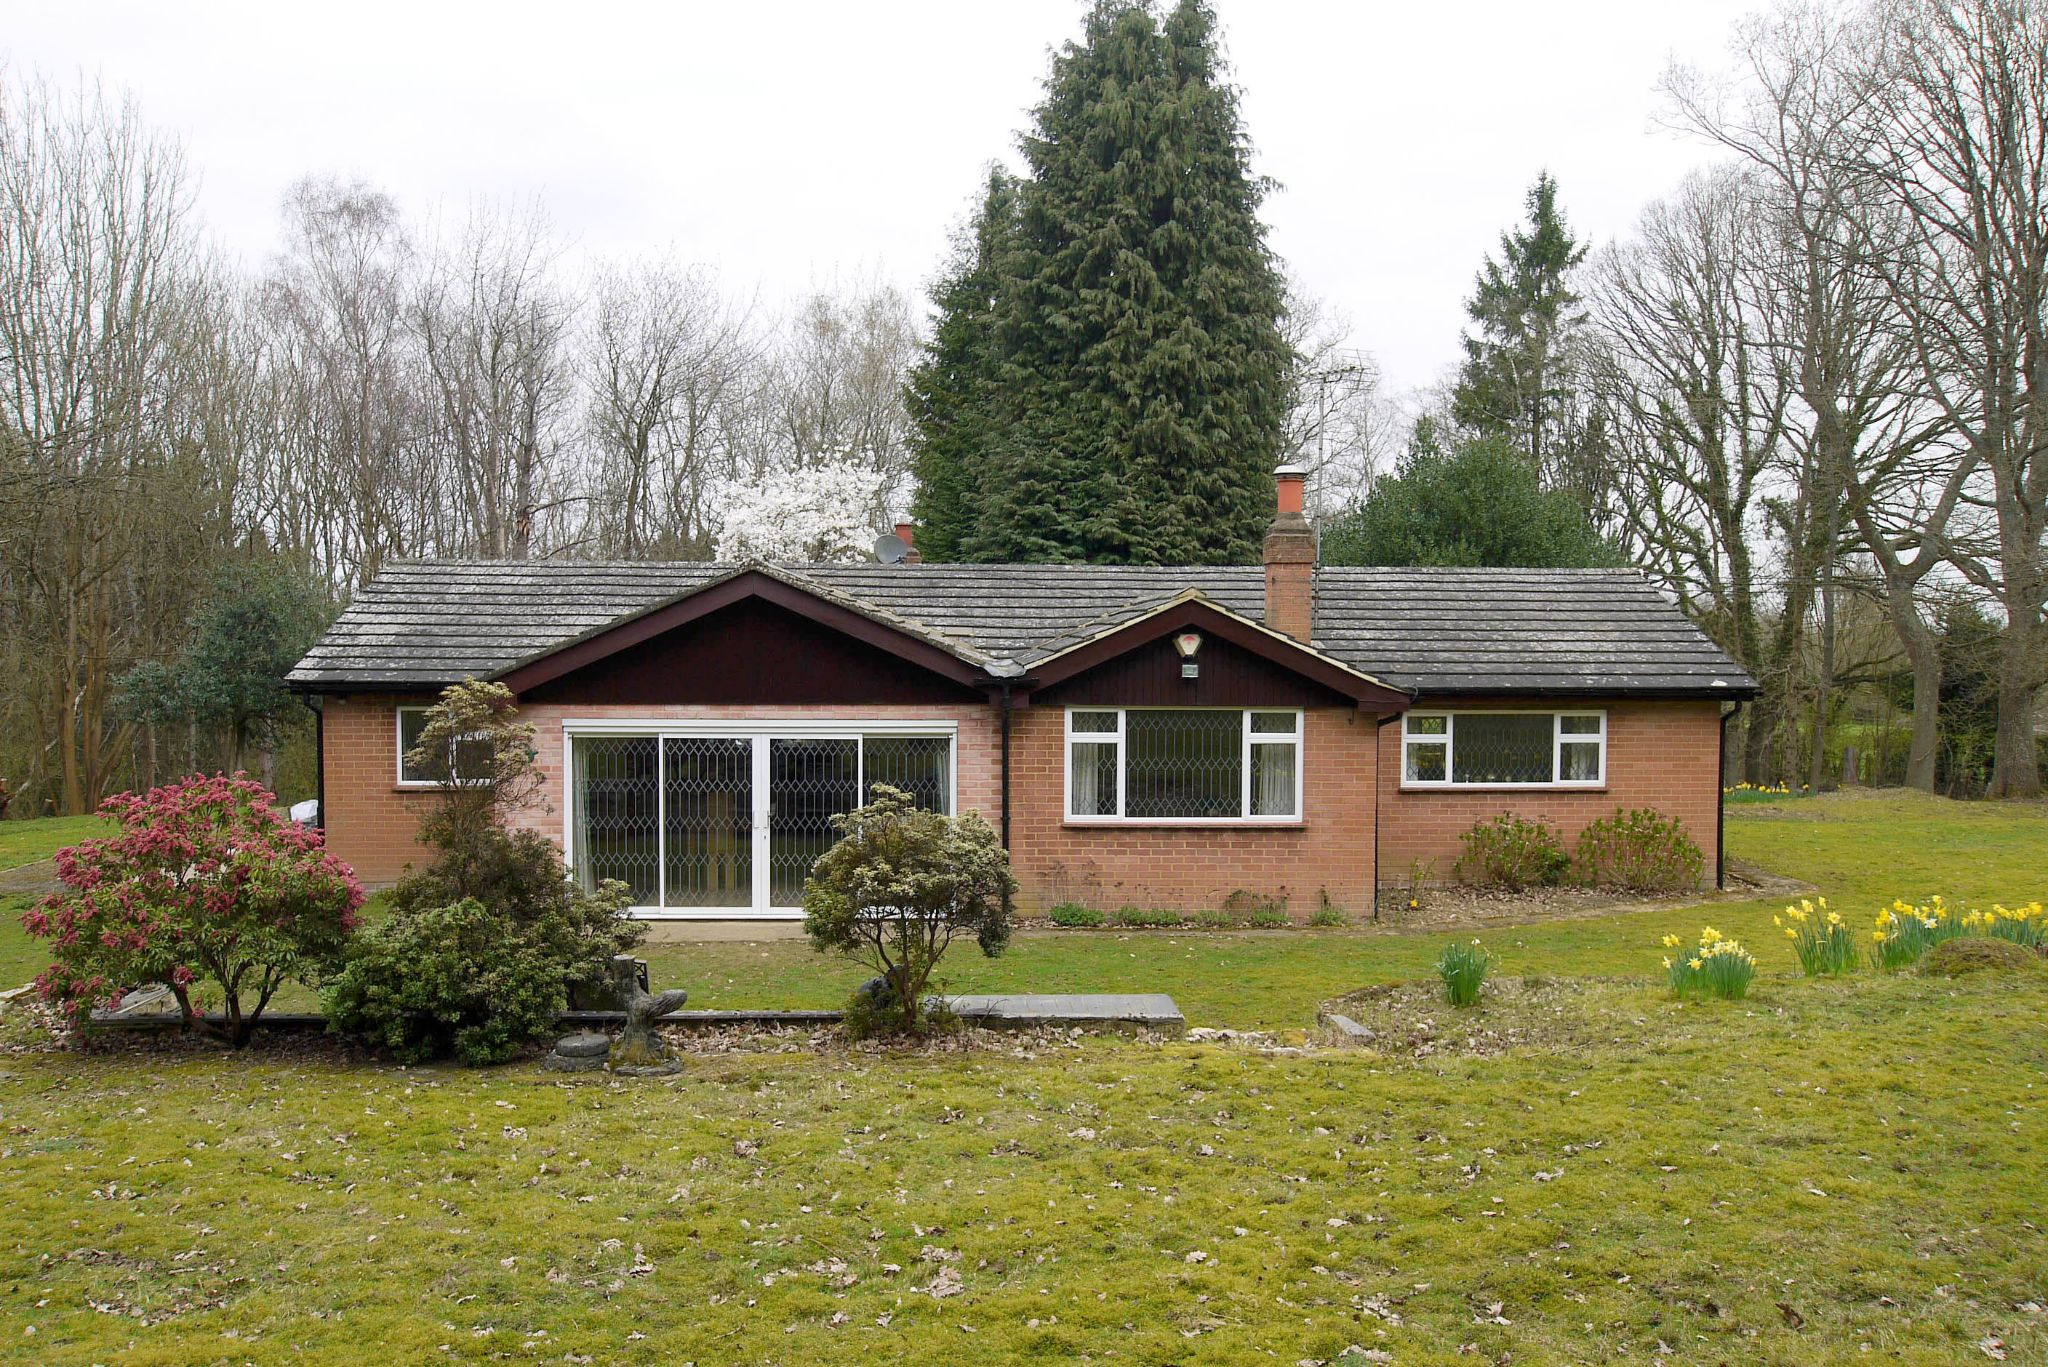 2 bedroom detached bungalow Sold in Sevenoaks - Photograph 1